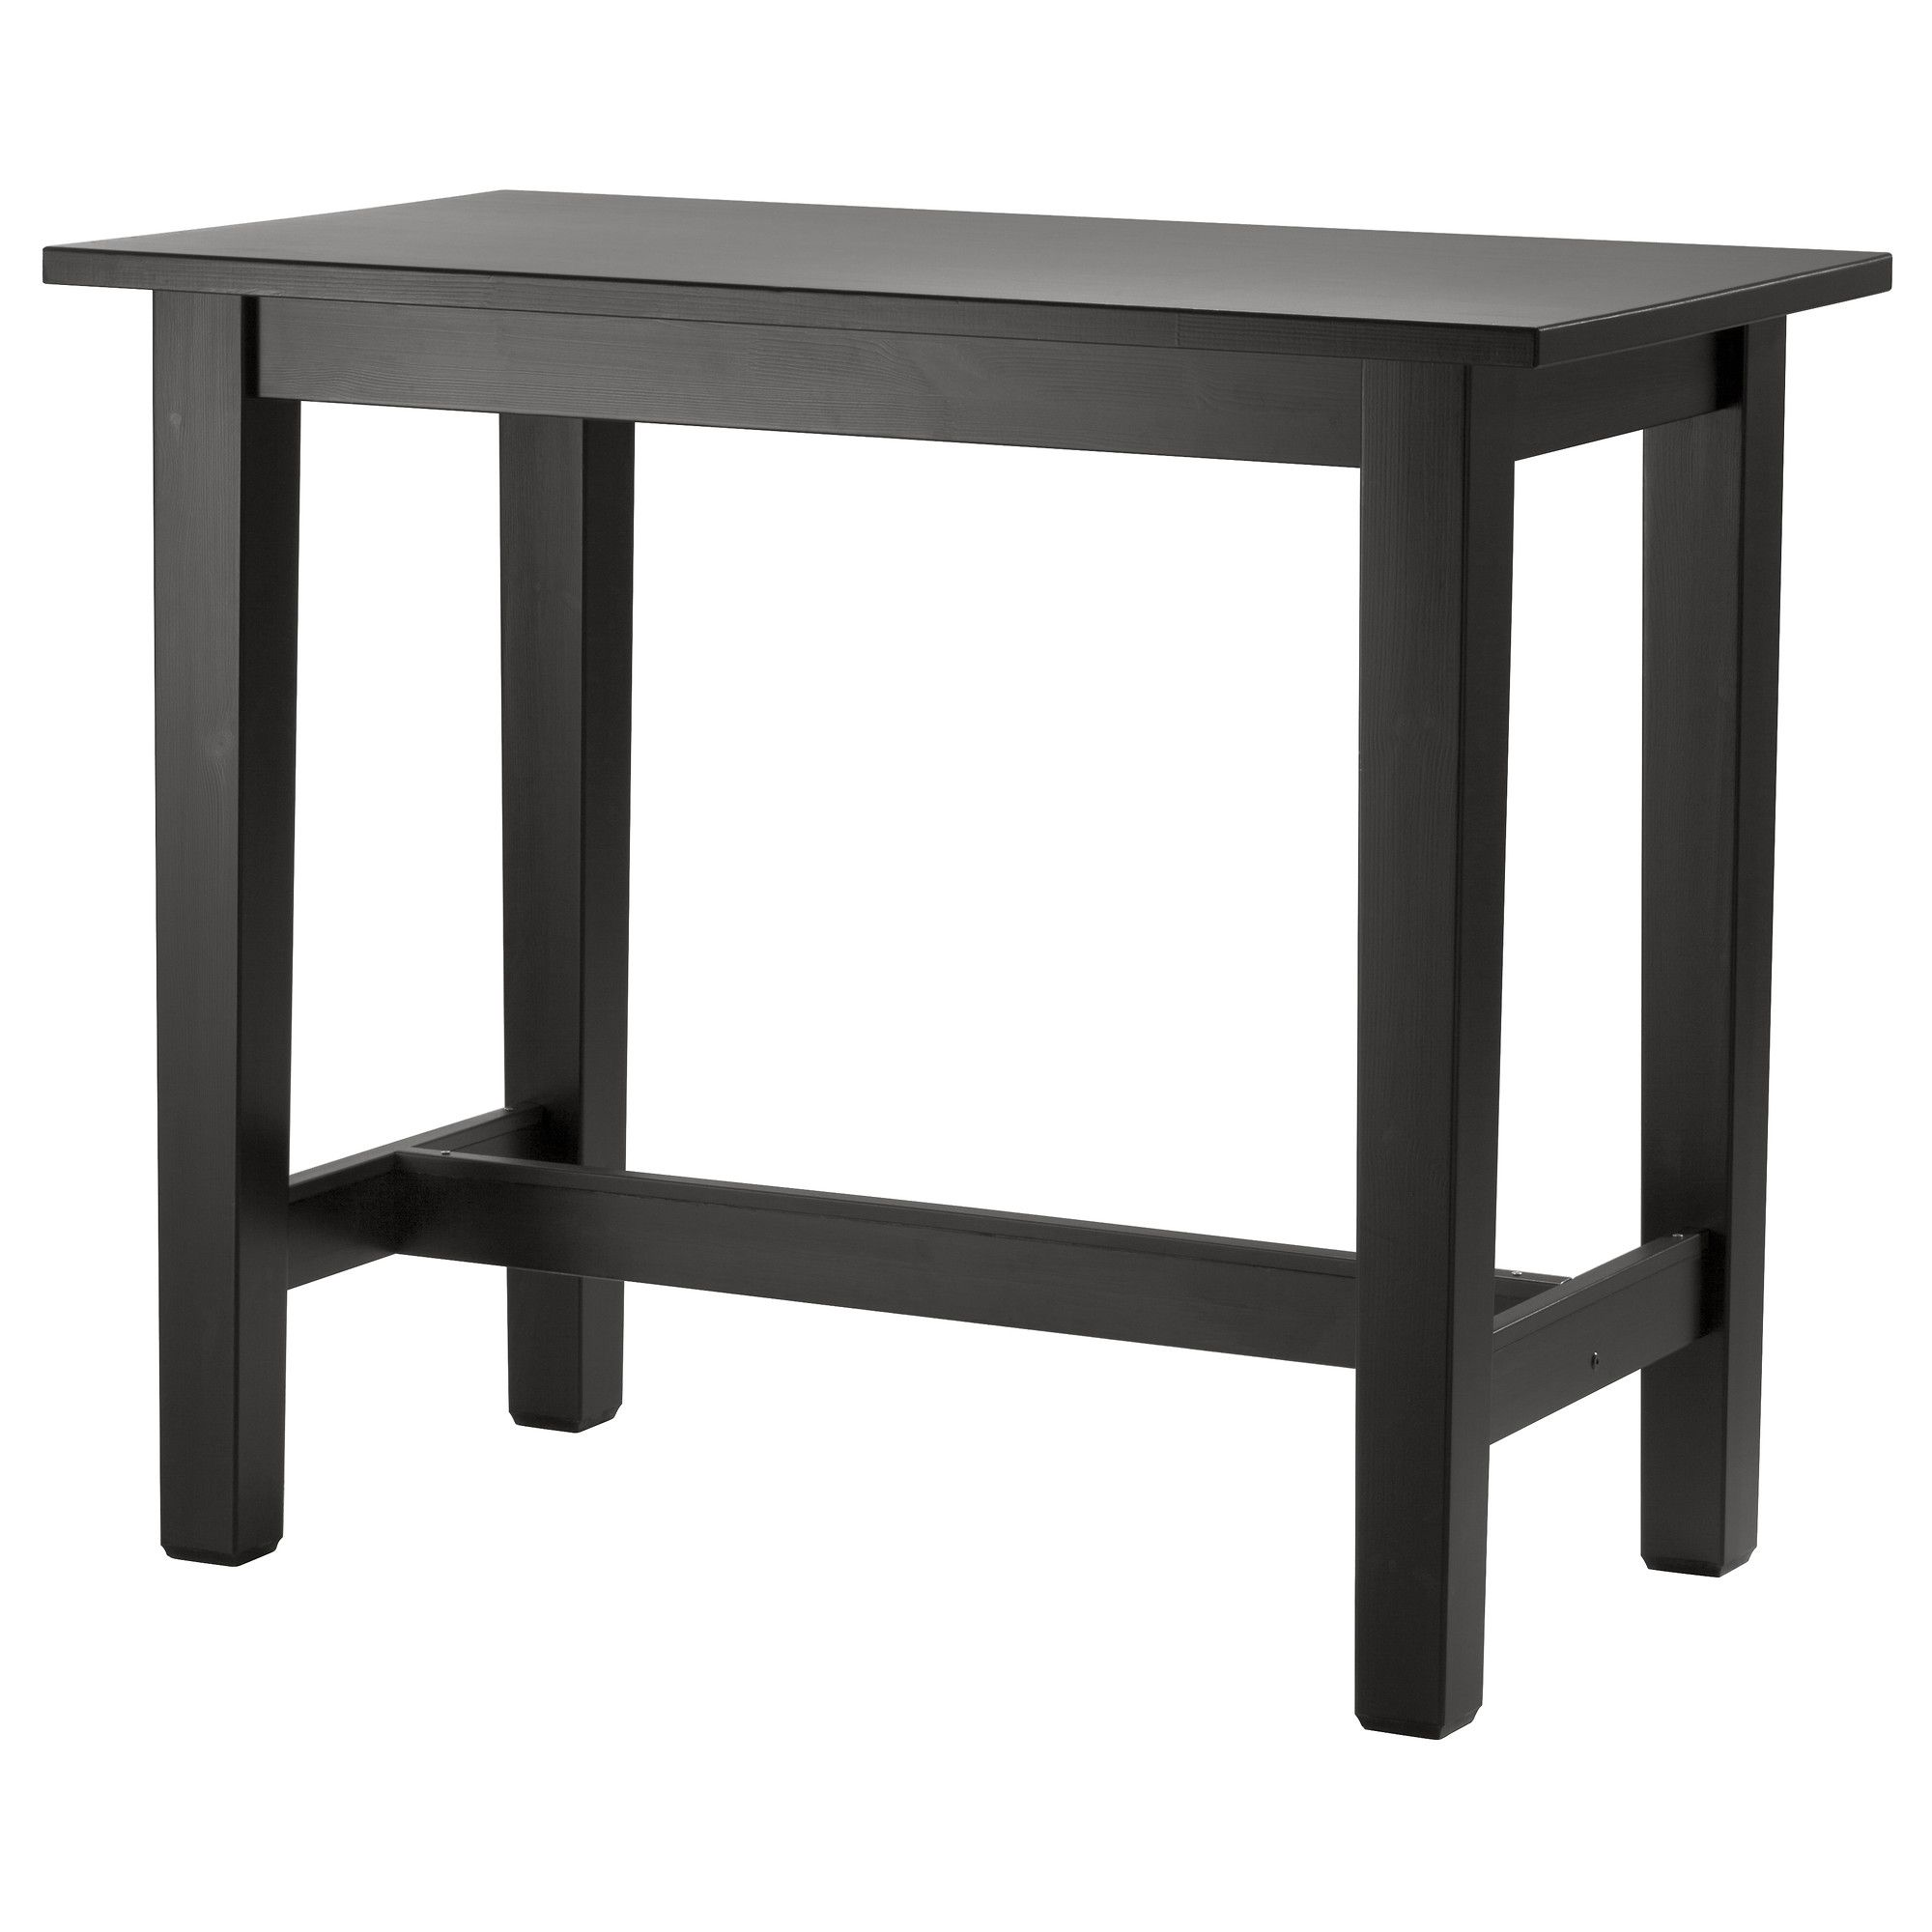 STORNÄS Bar table, brown-black | Pinterest